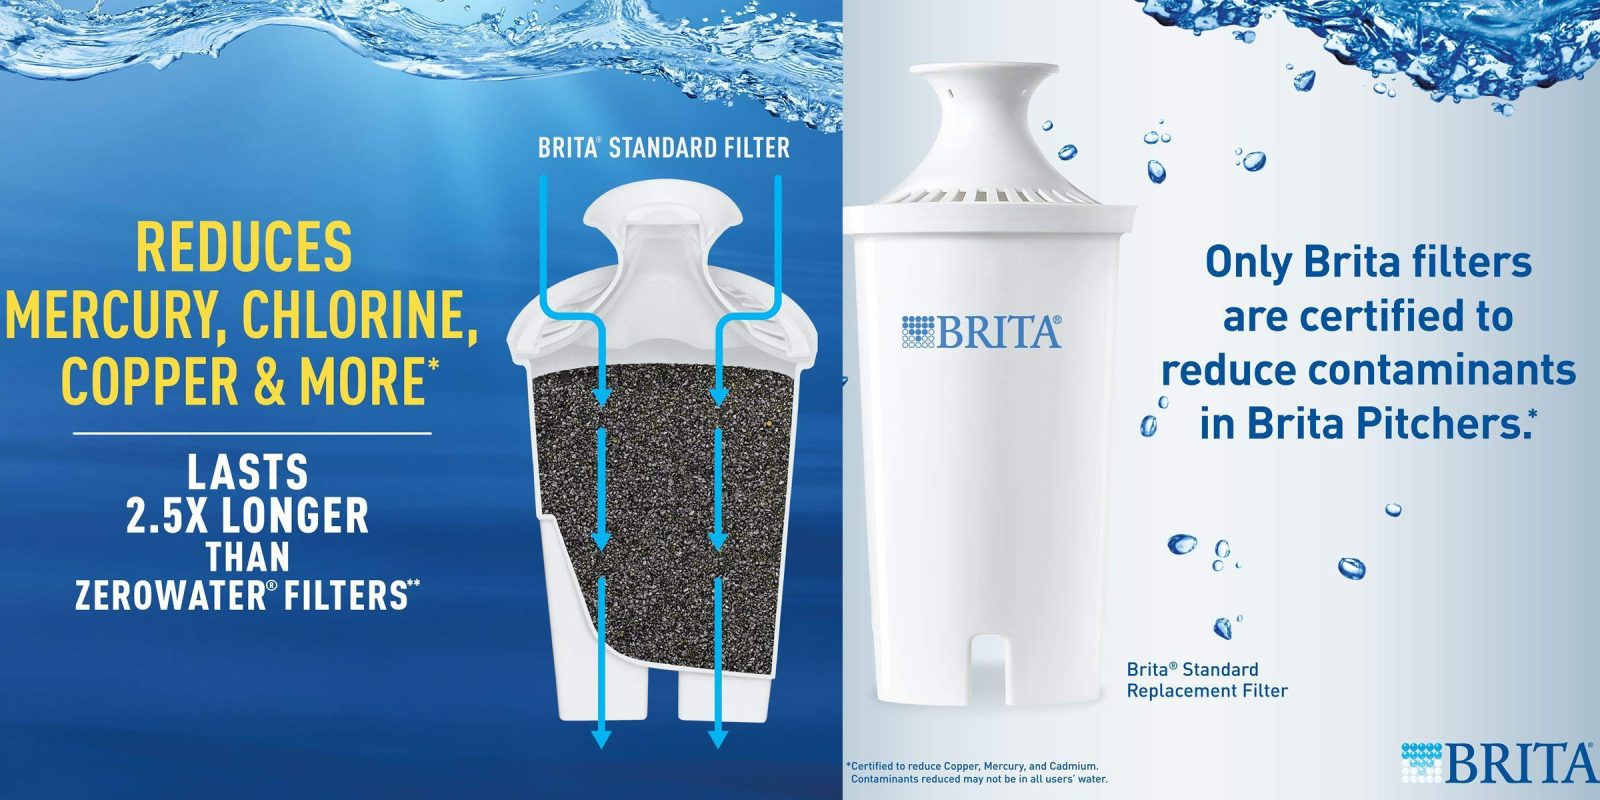 Get some fresh new filters for your Brita pitcher today: 6